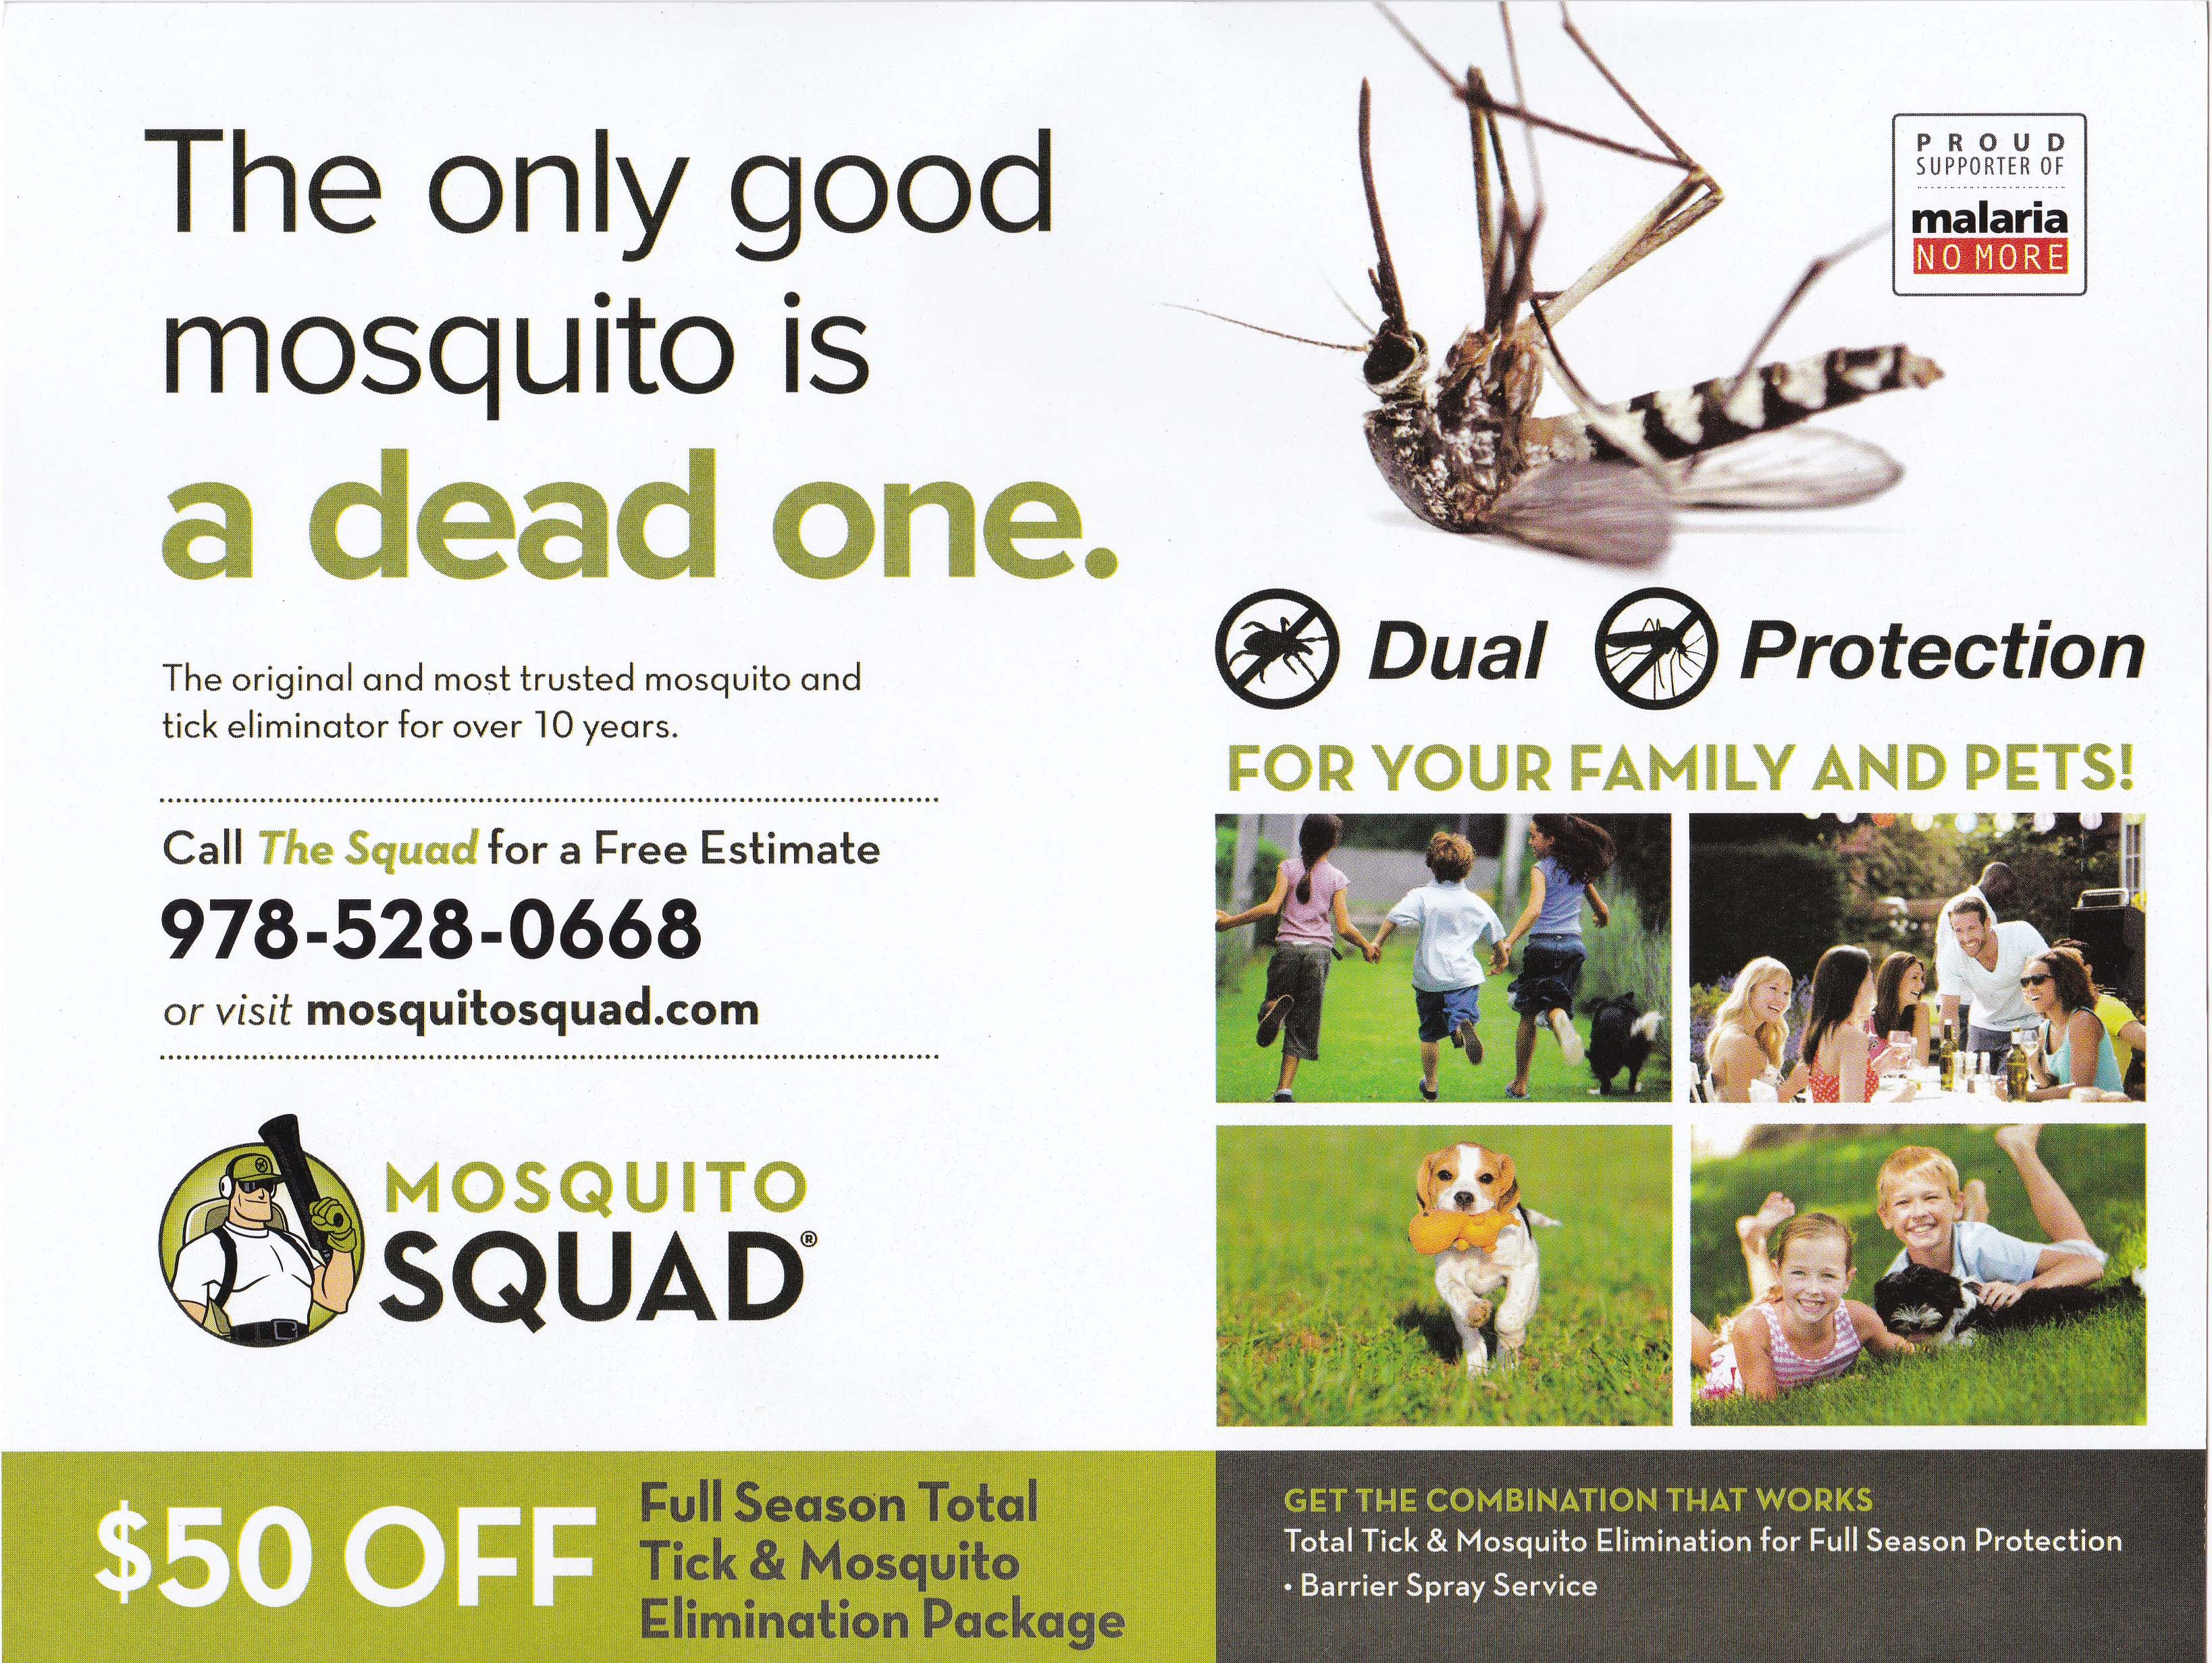 Mosquito Squad - Summer 2016 - Mailing 3 - Side 1